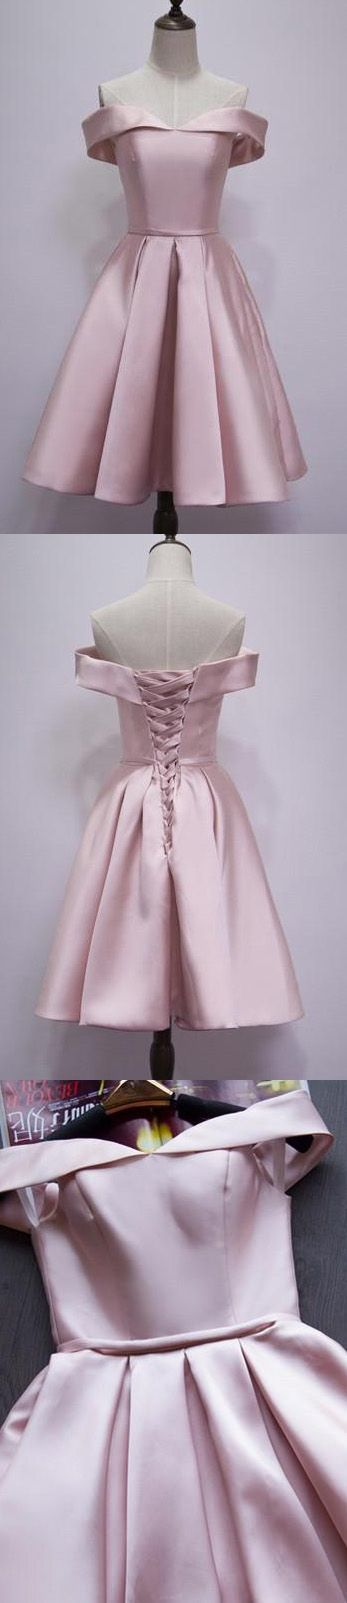 Short Prom Dresses, Lace Prom Dresses, Champagne Prom Dresses, Prom Dresses Short, Princess Prom Dresses, Knee Length Homecoming Dresses, Prom Short Dresses, Short Homecoming Dresses, Lace Homecoming Dresses, A Line dresses, Knee Length Dresses, Princess dresses Up, Lace Up Prom Dresses, Pleated Party Dresses, Knee-length Homecoming Dresses, A-line/Princess Party Dresses